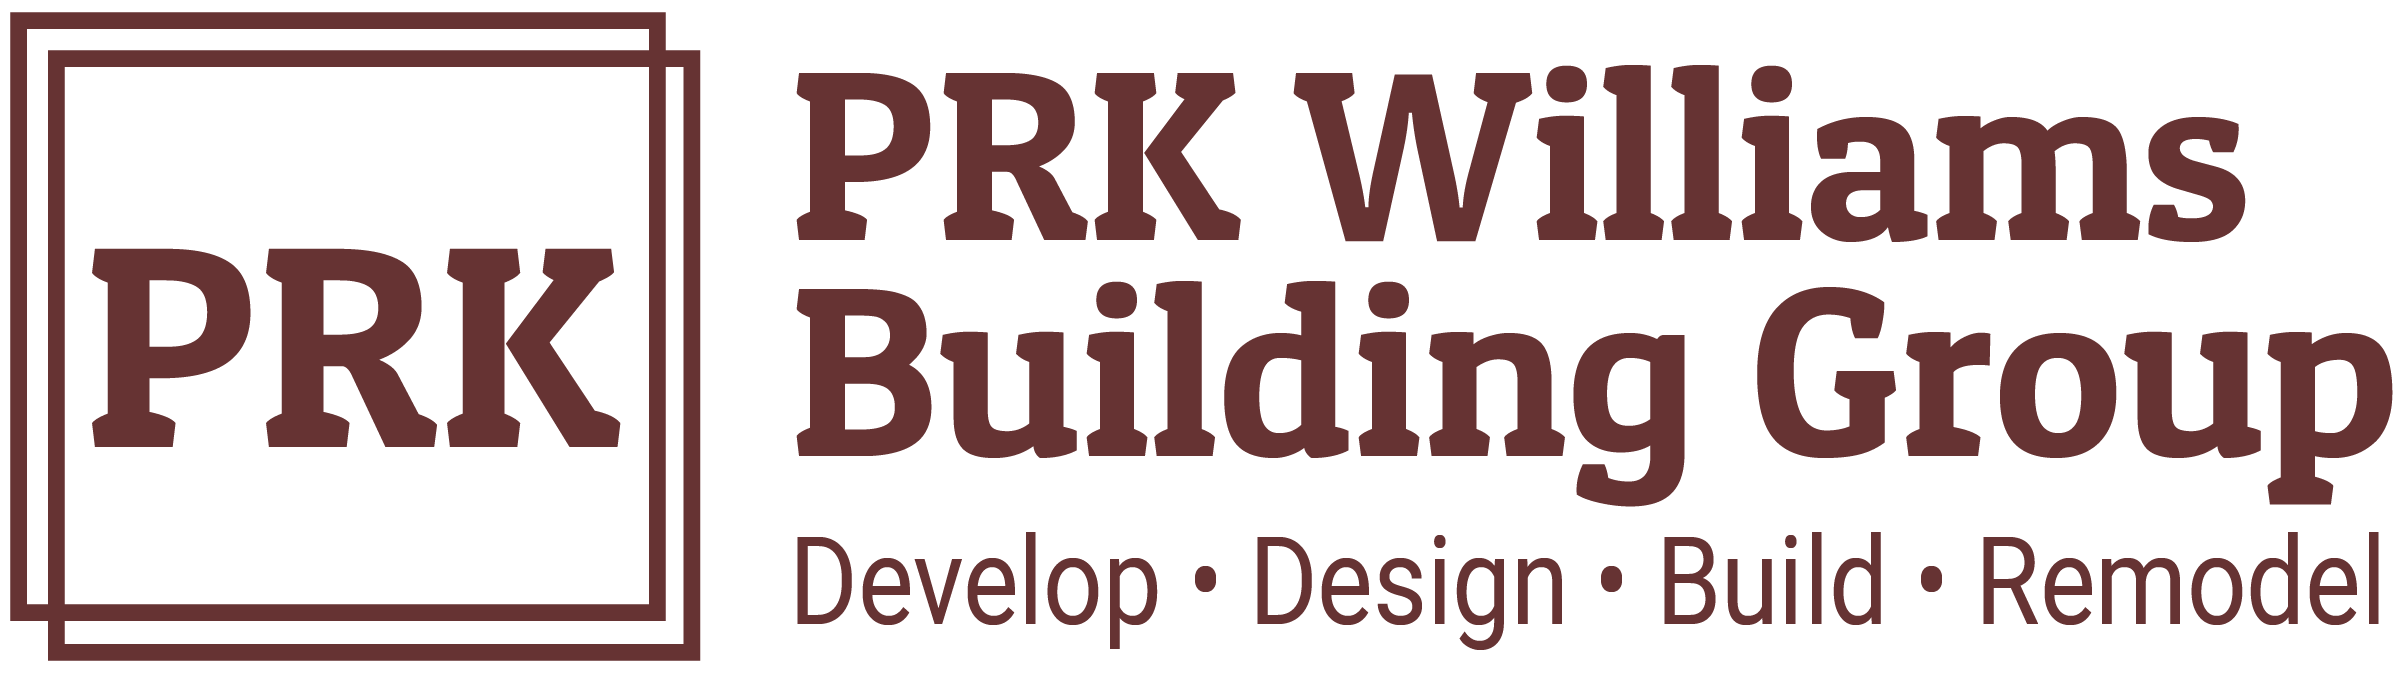 PRK Williams Building Group